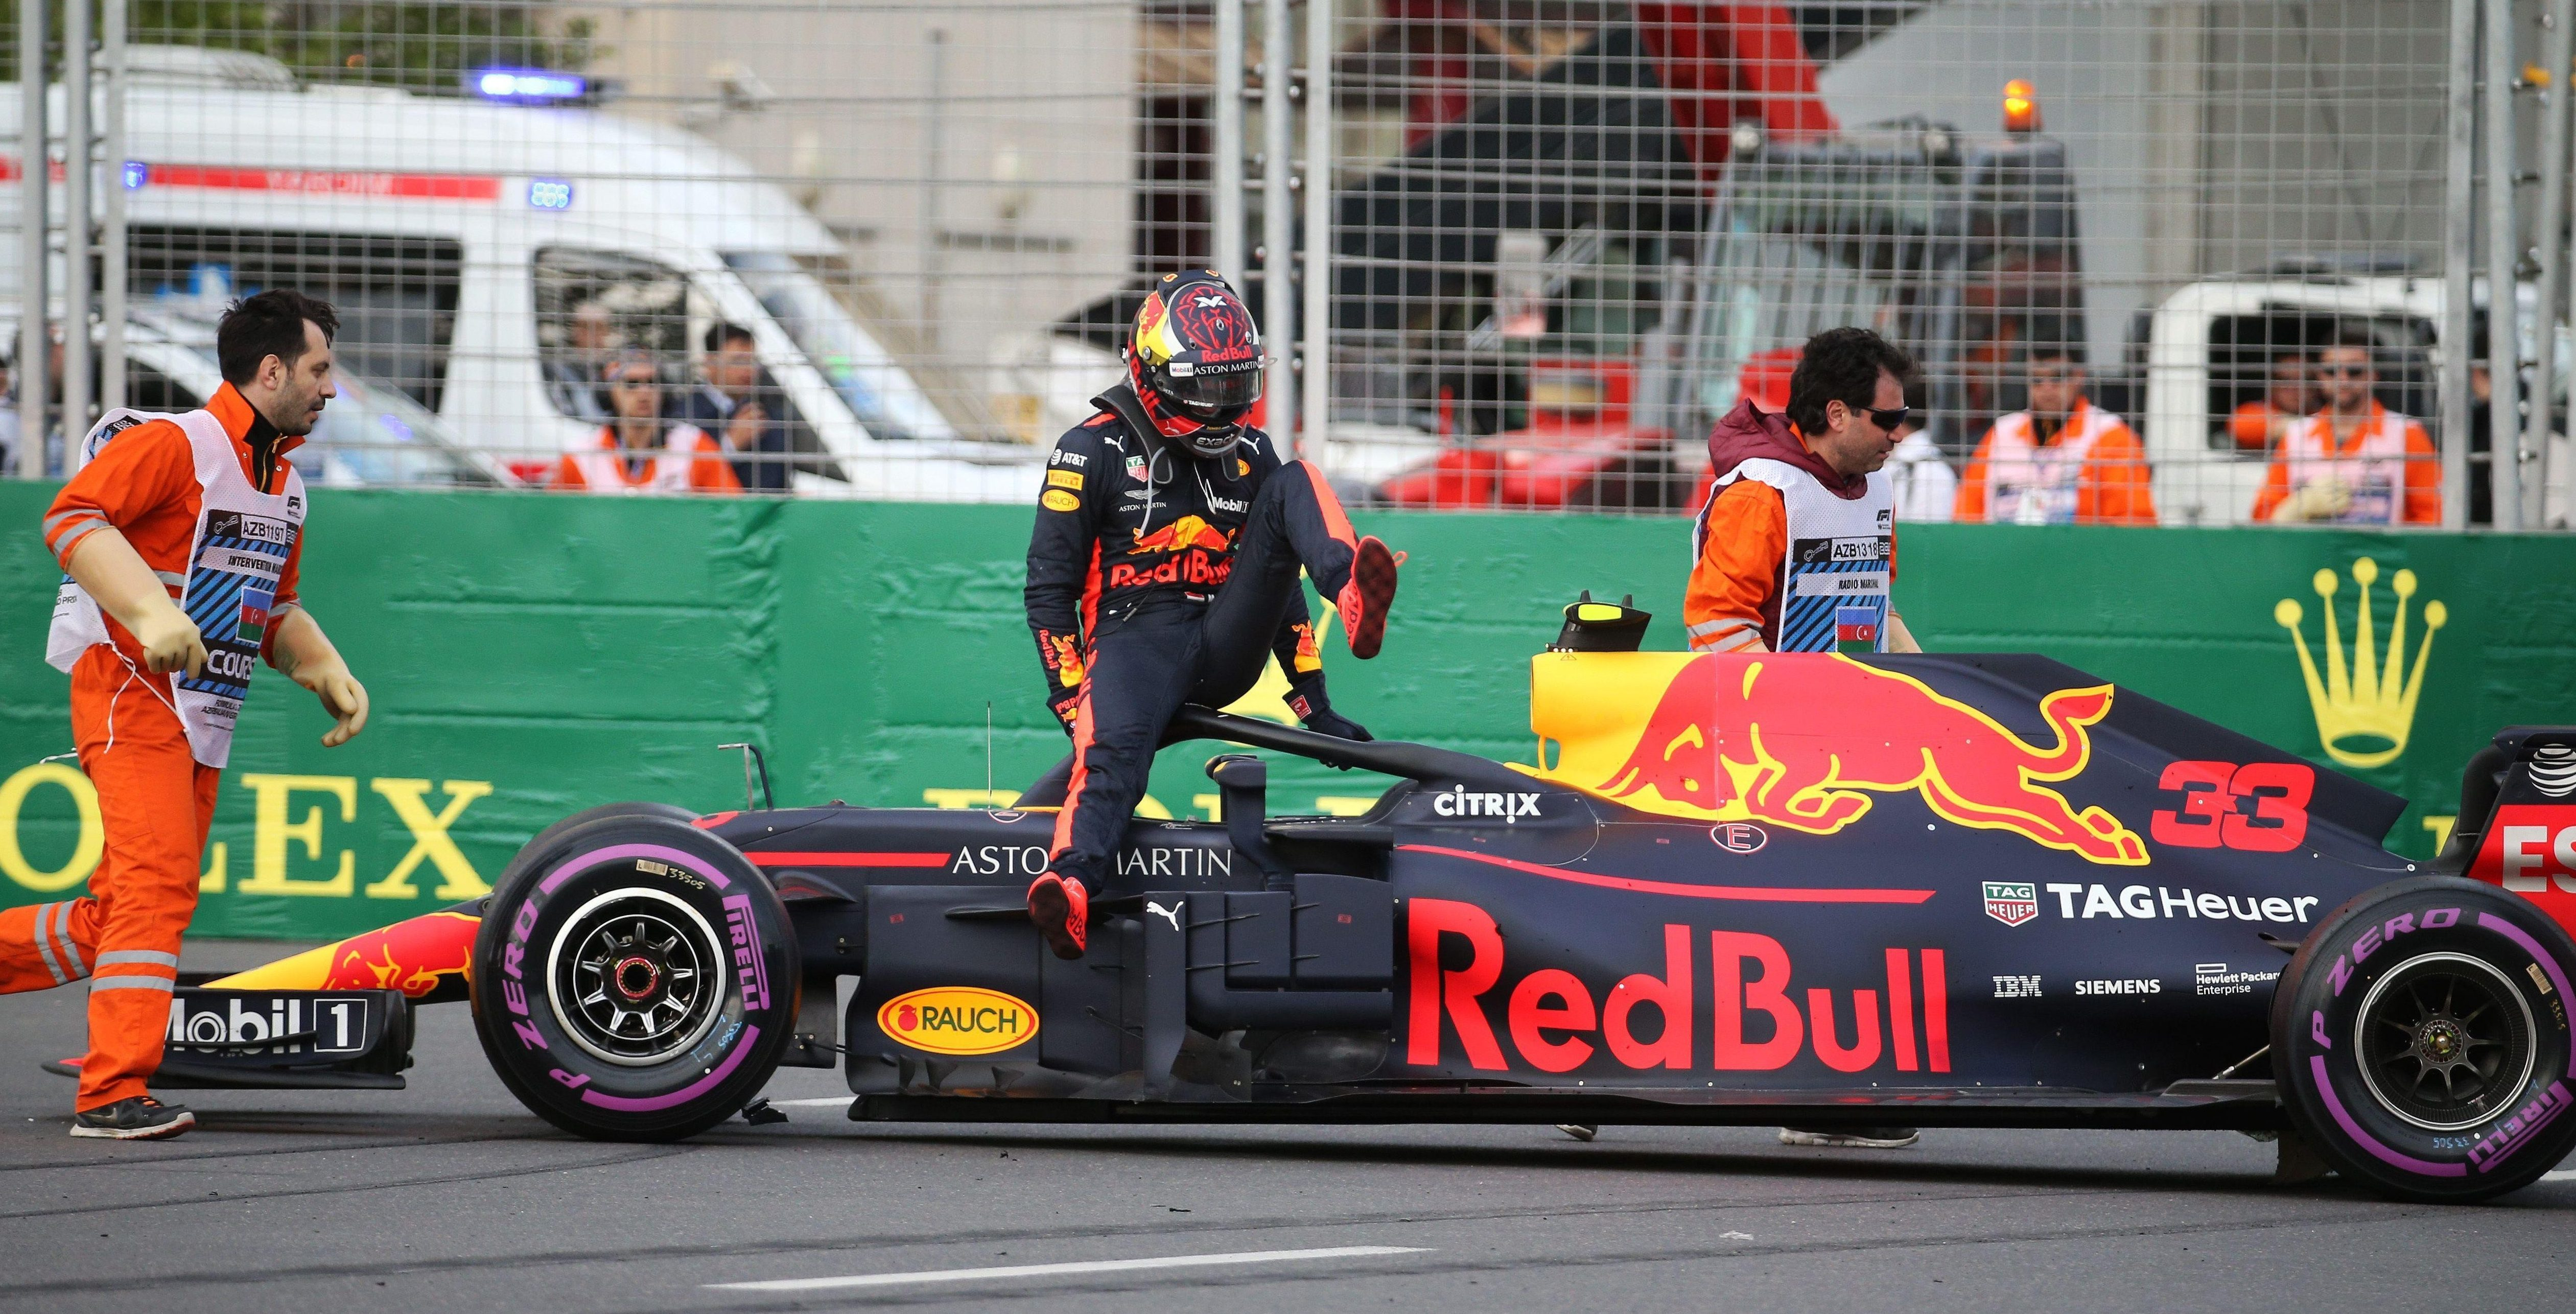 The race was ended for Max Verstappen and his Red Bull - in bizarre fashion